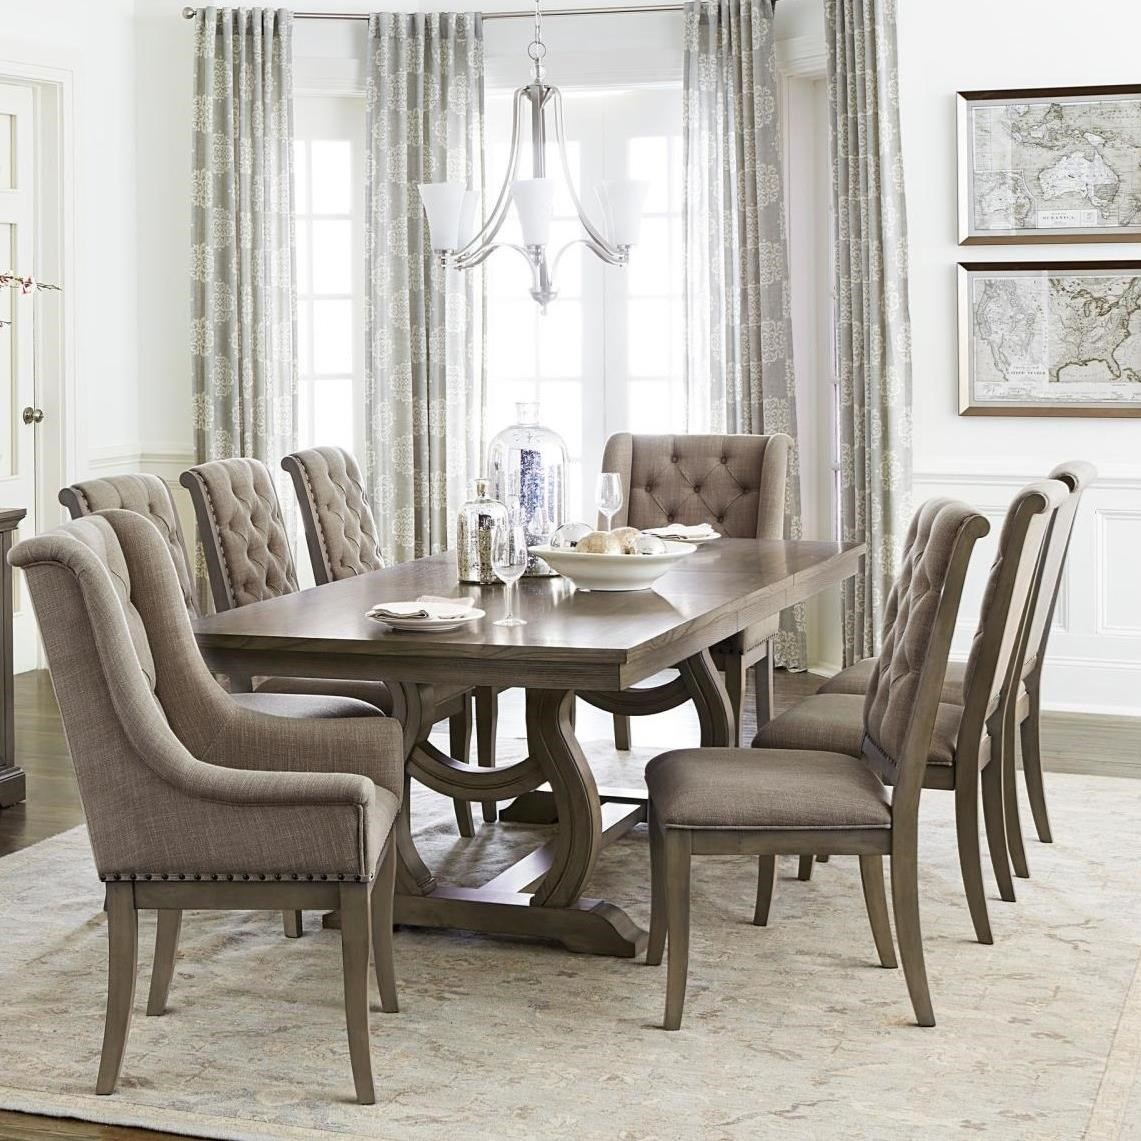 Homelegance Vermillion 349475370 Transitional Dining Table Set With 6 Chairs Beck S Furniture Dining 7 Or More Piece Sets